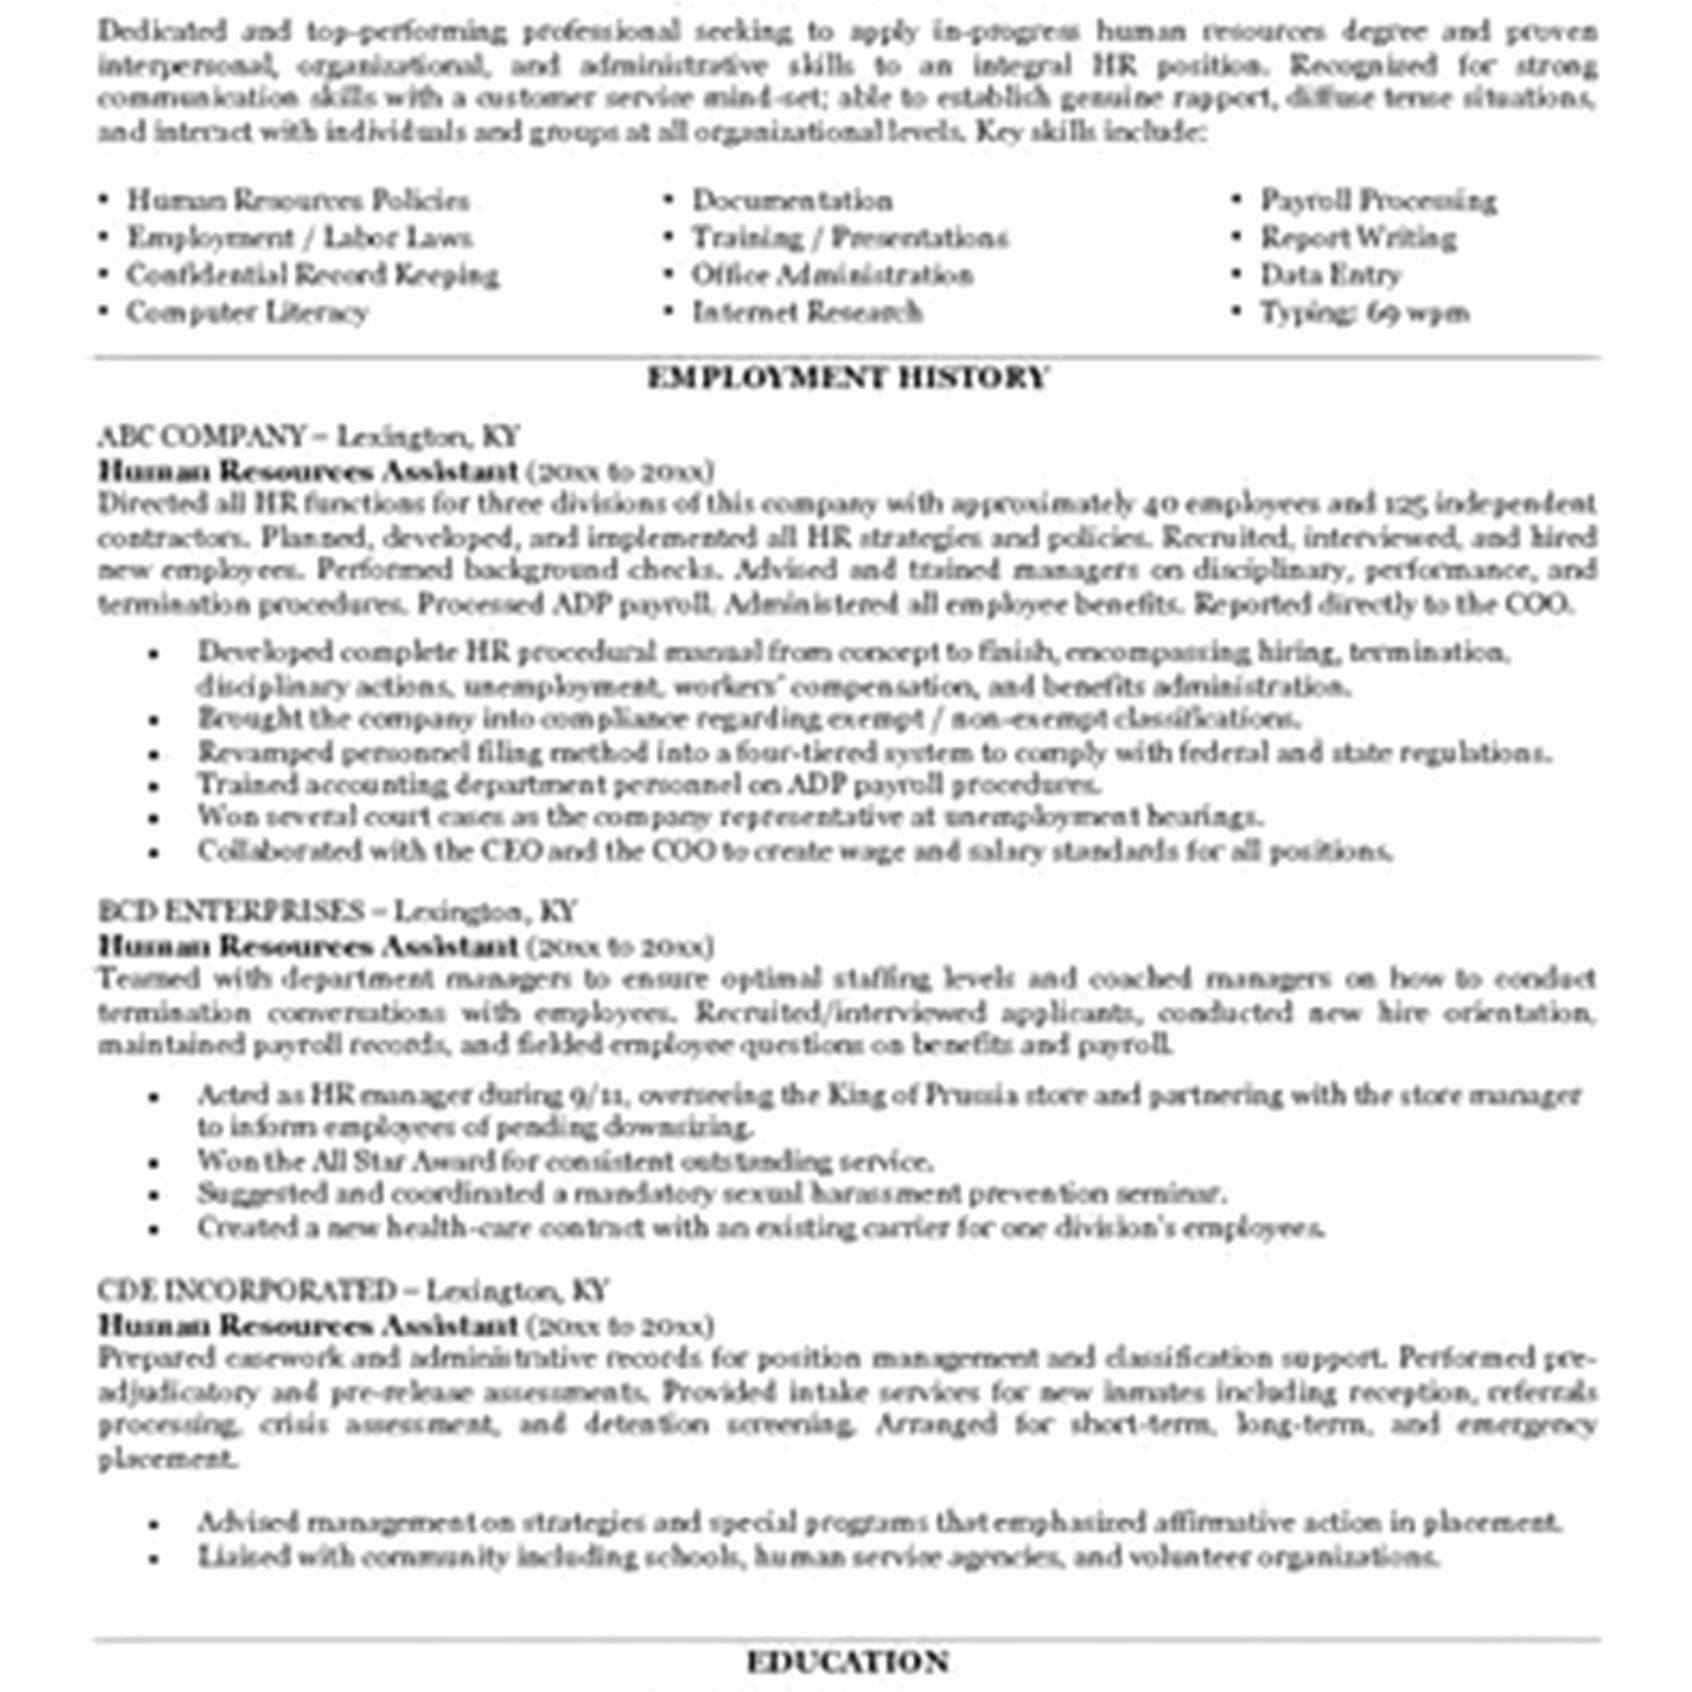 human resources assistant resume example-Sample Human Resources Assistant Resume New Hr Assistant Resume New Sample Human Resources Resume Myacereporter 10-k